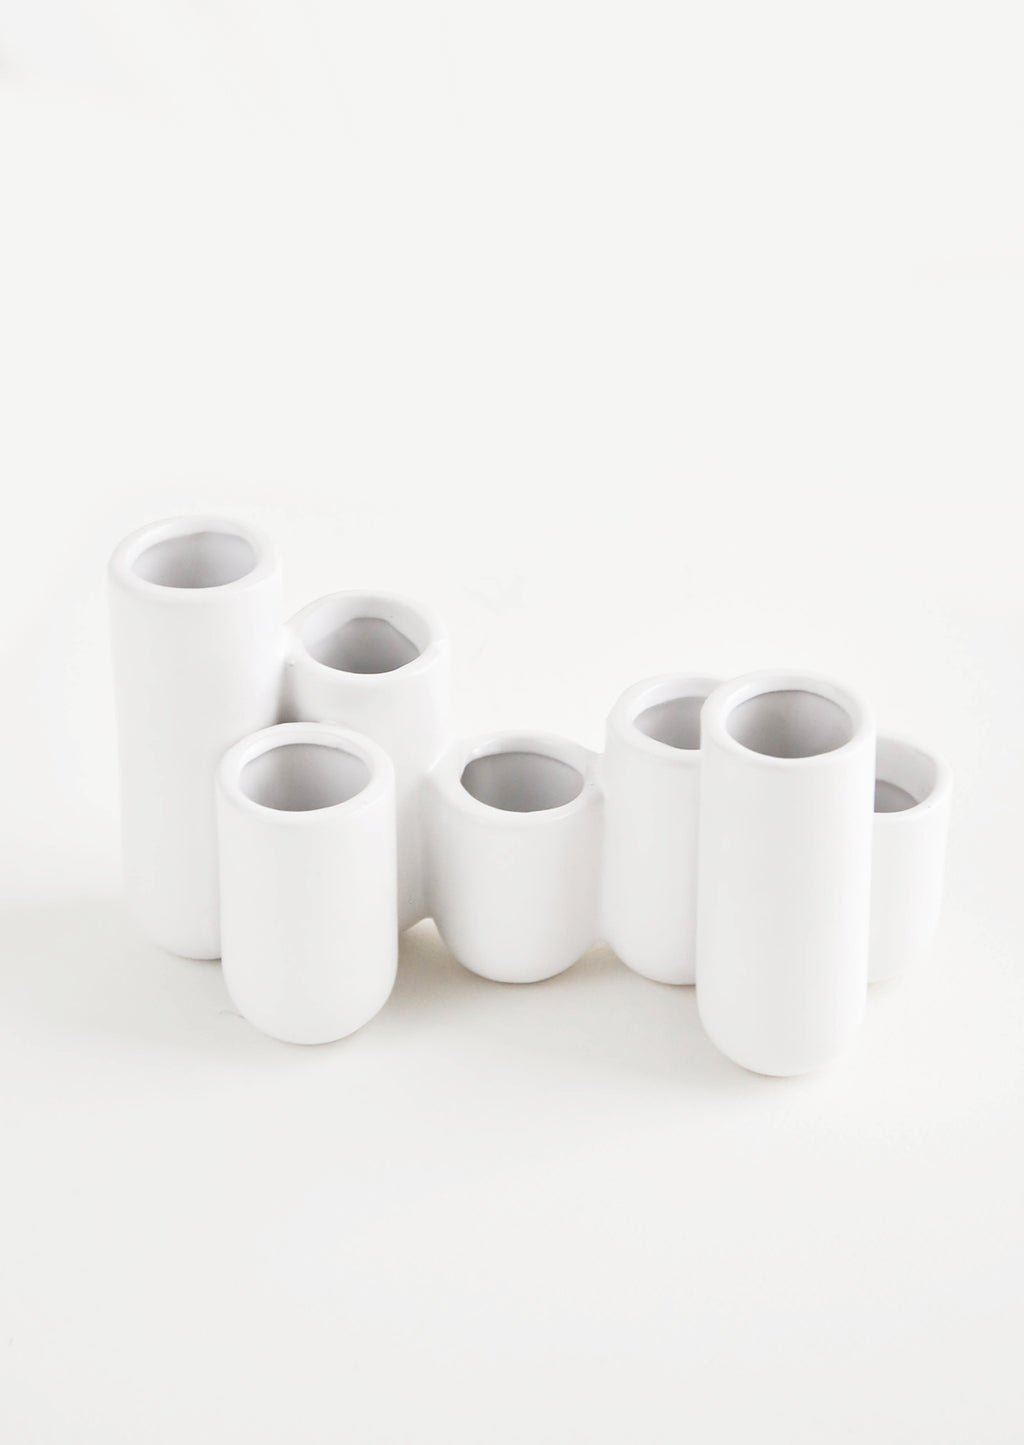 2: Multiple stem vase made of white ceramic vials in varying heights, clustered and fused together